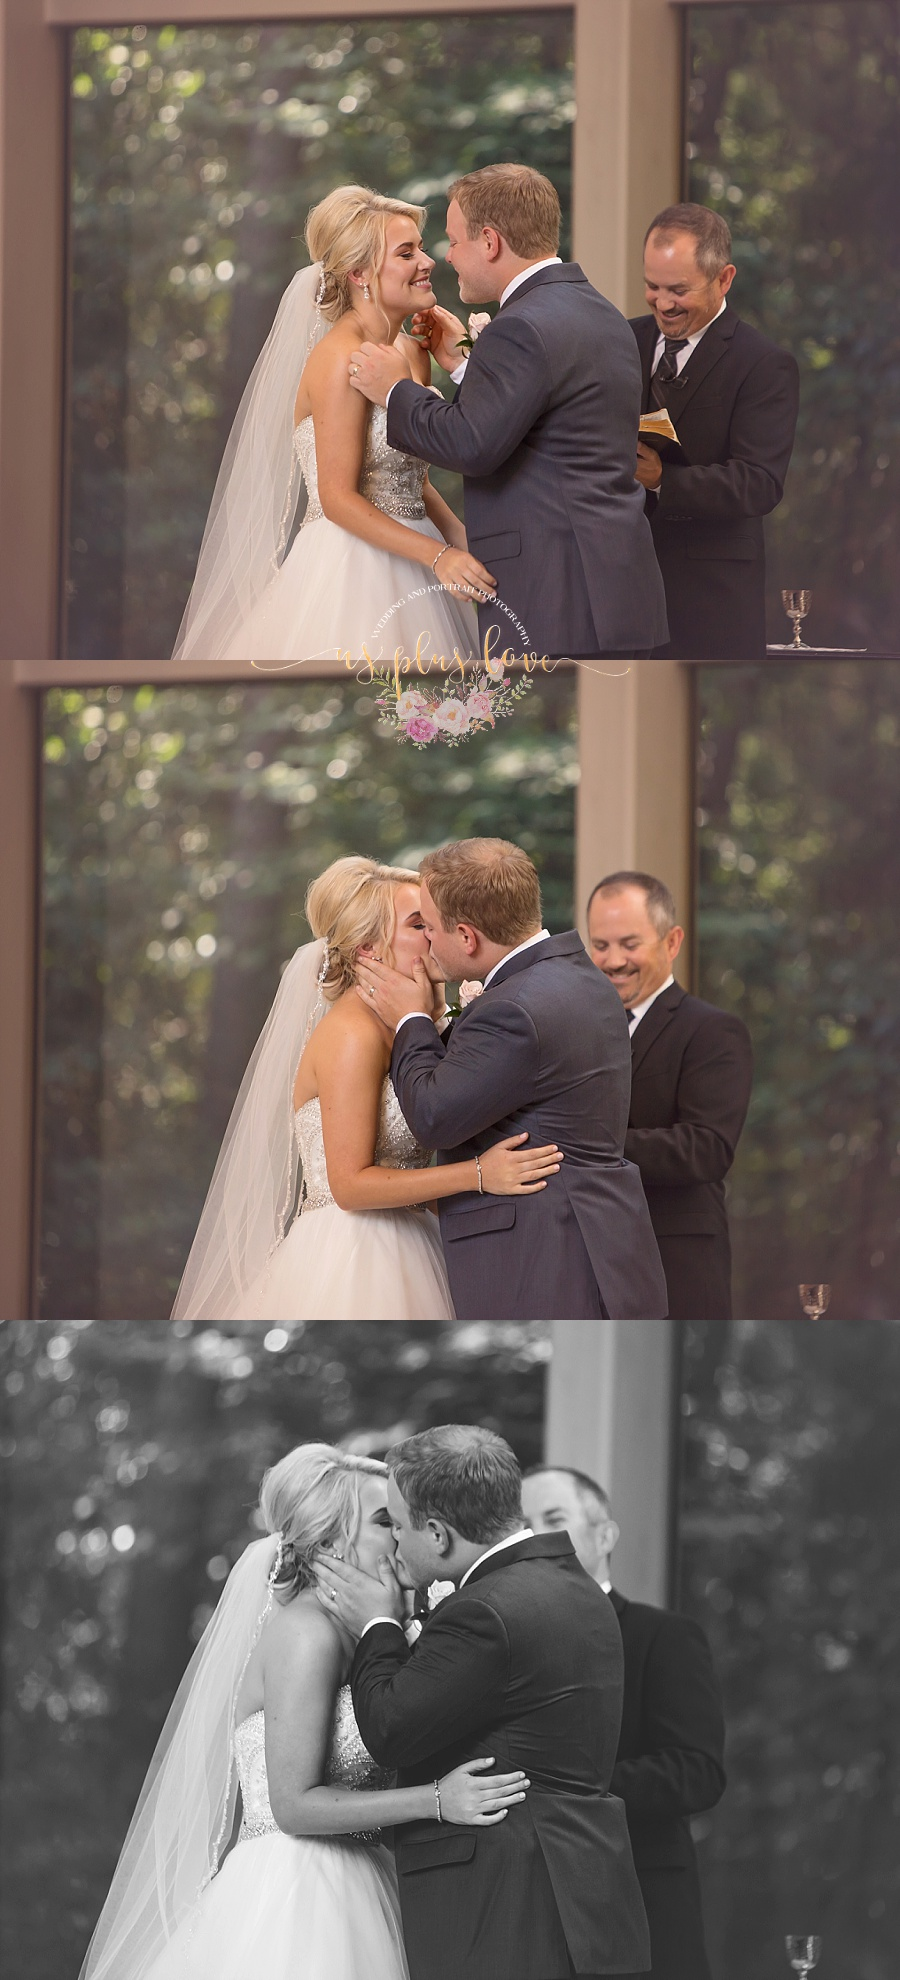 the-kiss-wedding-photographs-pics-images-first-my-bride-groom-mr-mrs-lasting-memories-the-woodlands-church-spring-conroe-77381-77381-market-street-sterling-ridge-research-forest-drive-celebrate.jpg